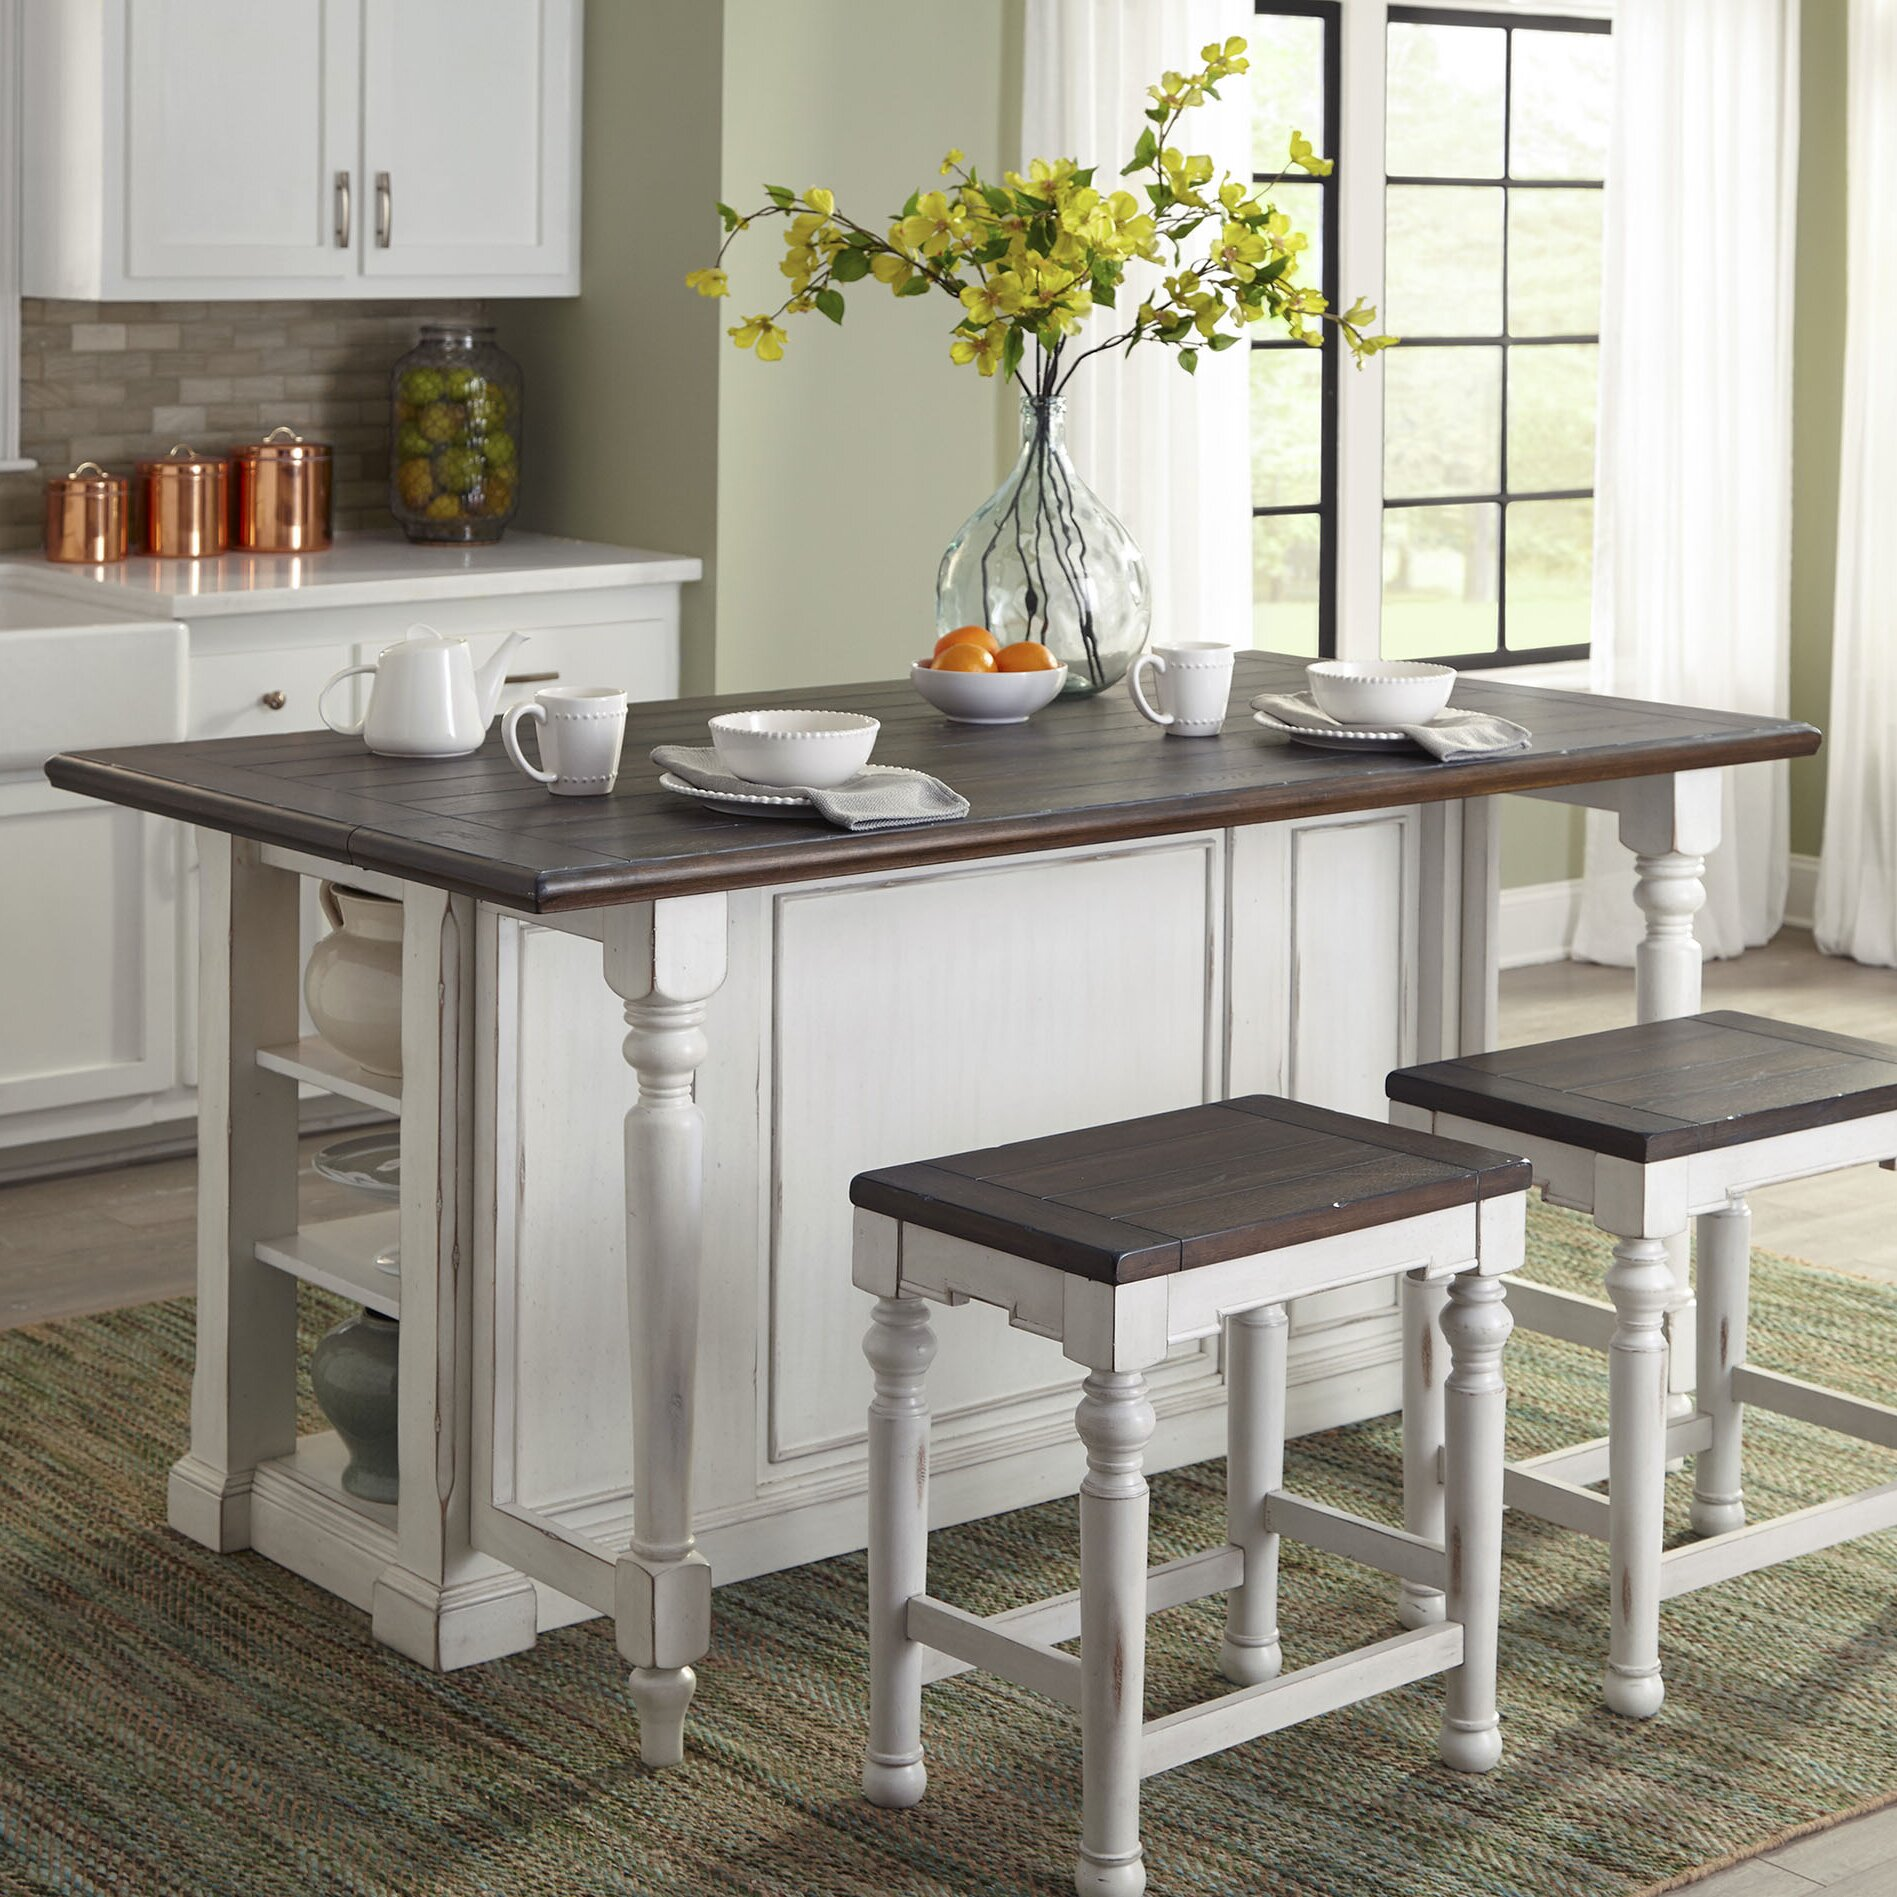 wood kitchen islands august grove kitchen island with wood top amp reviews 1145